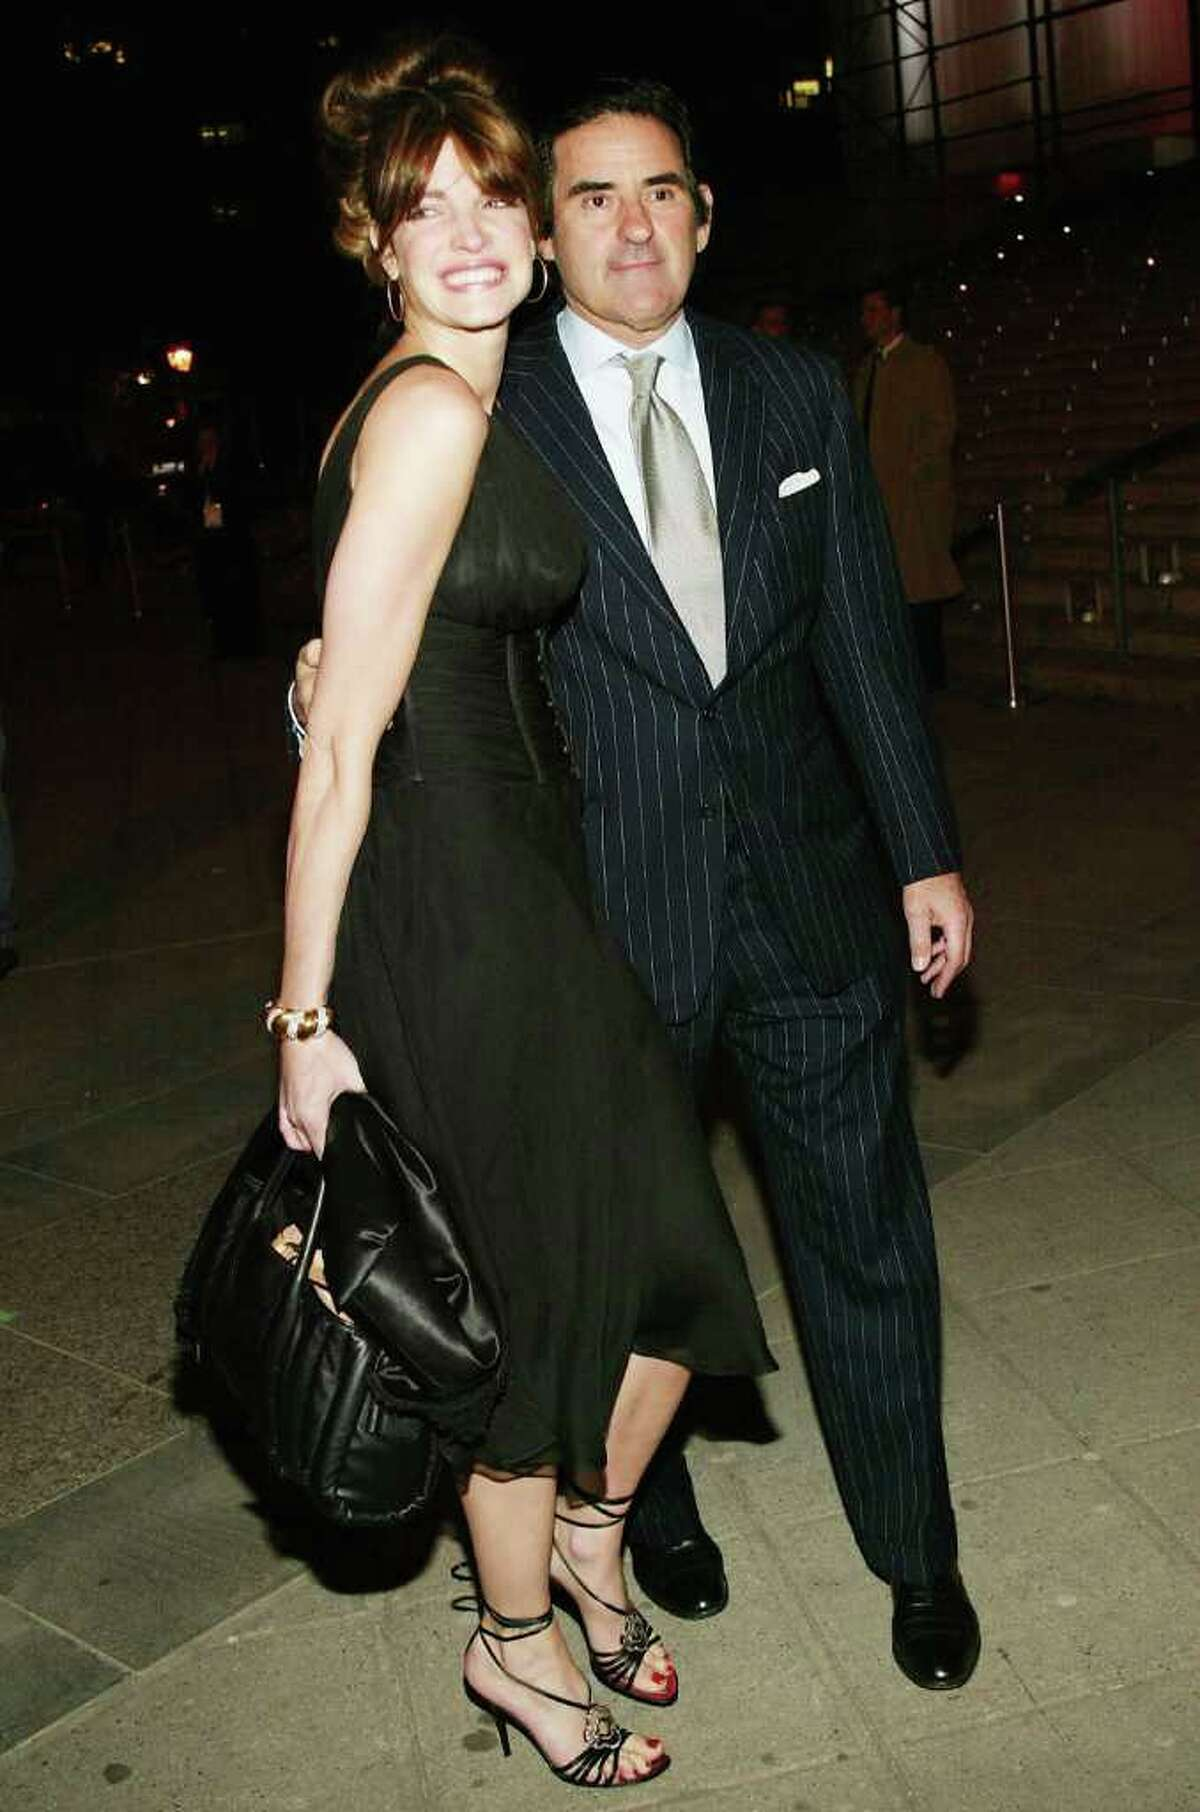 Model Stephanie Seymour and millionaire husband Peter Brant attend the Vanity Fair Party at the Tribeca Film Festival on May 4, 2004 in New York City.